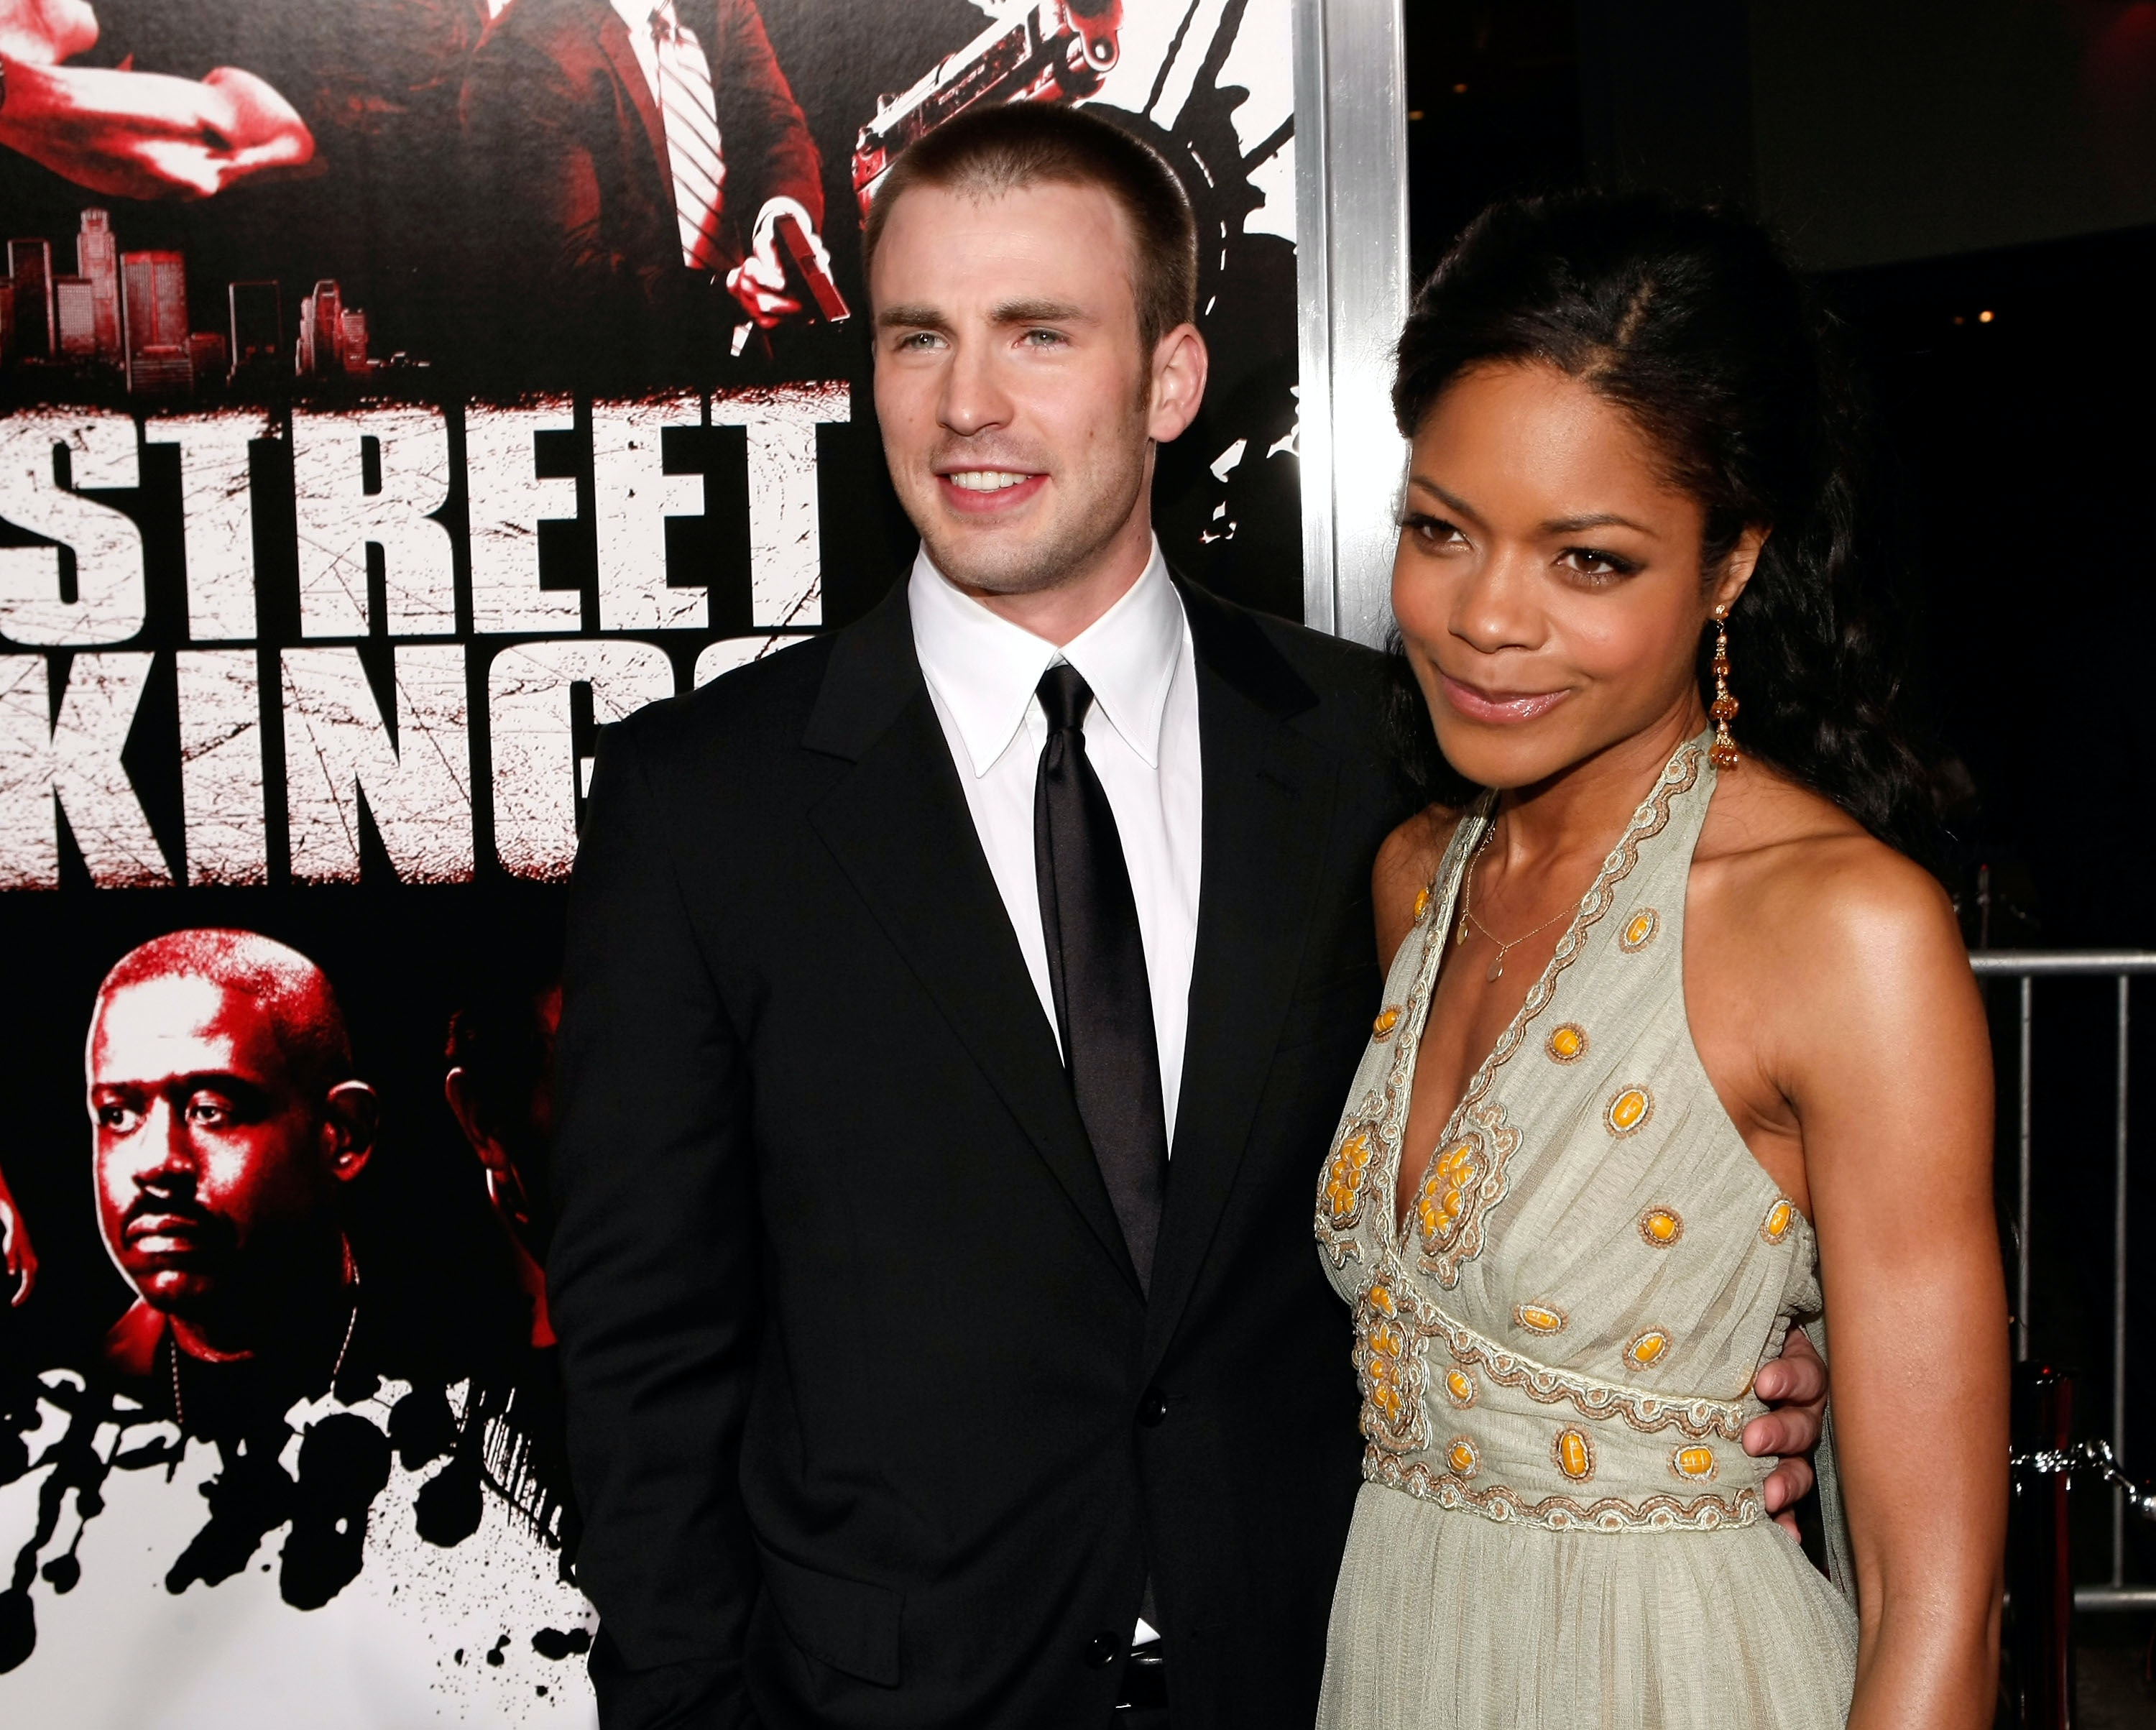 Chris evans actor dating history